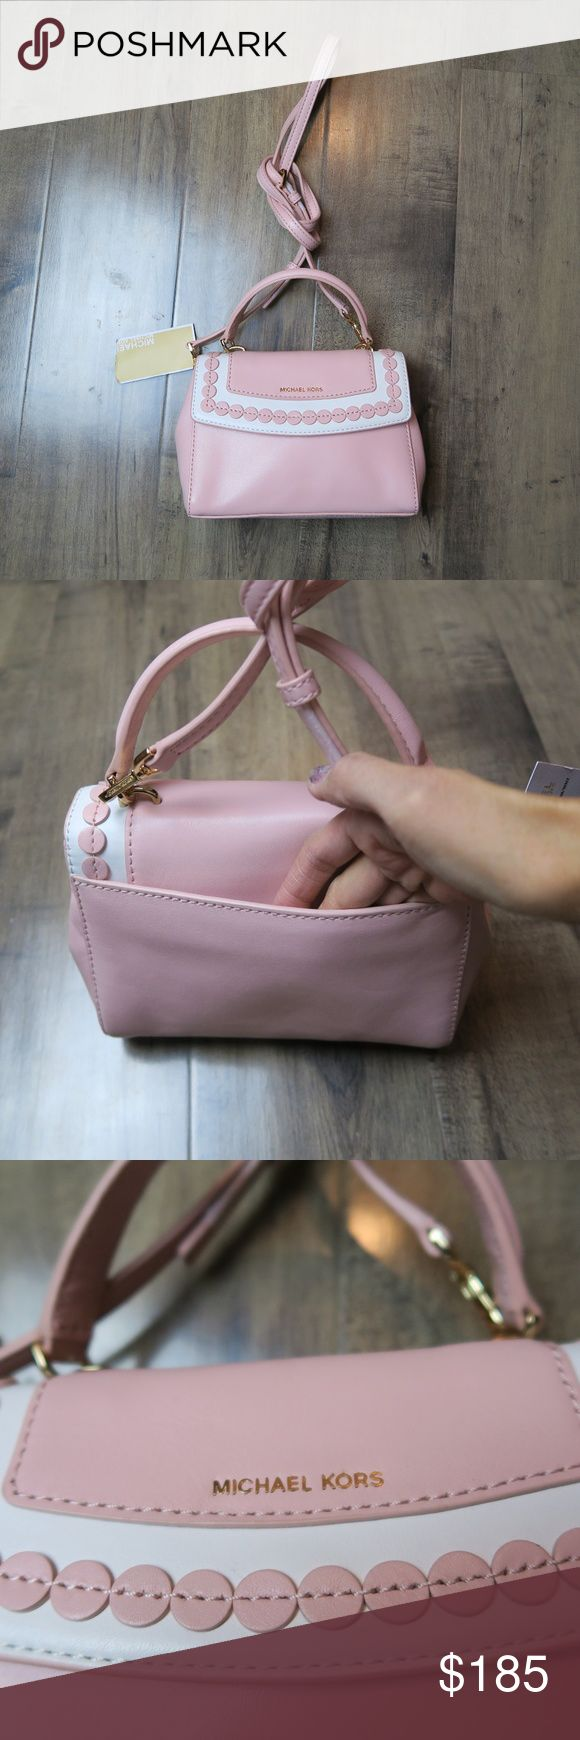 NWT Michael Kors Ava Blossom Crossbody Bag A perfect bag for toting the necessities for brunch! The leather is super soft!  Measurements: 7 inches long, 2.5 inches wide, 6 inches high. Comes with a crossbody strap. Michael Kors Bags Crossbody Bags